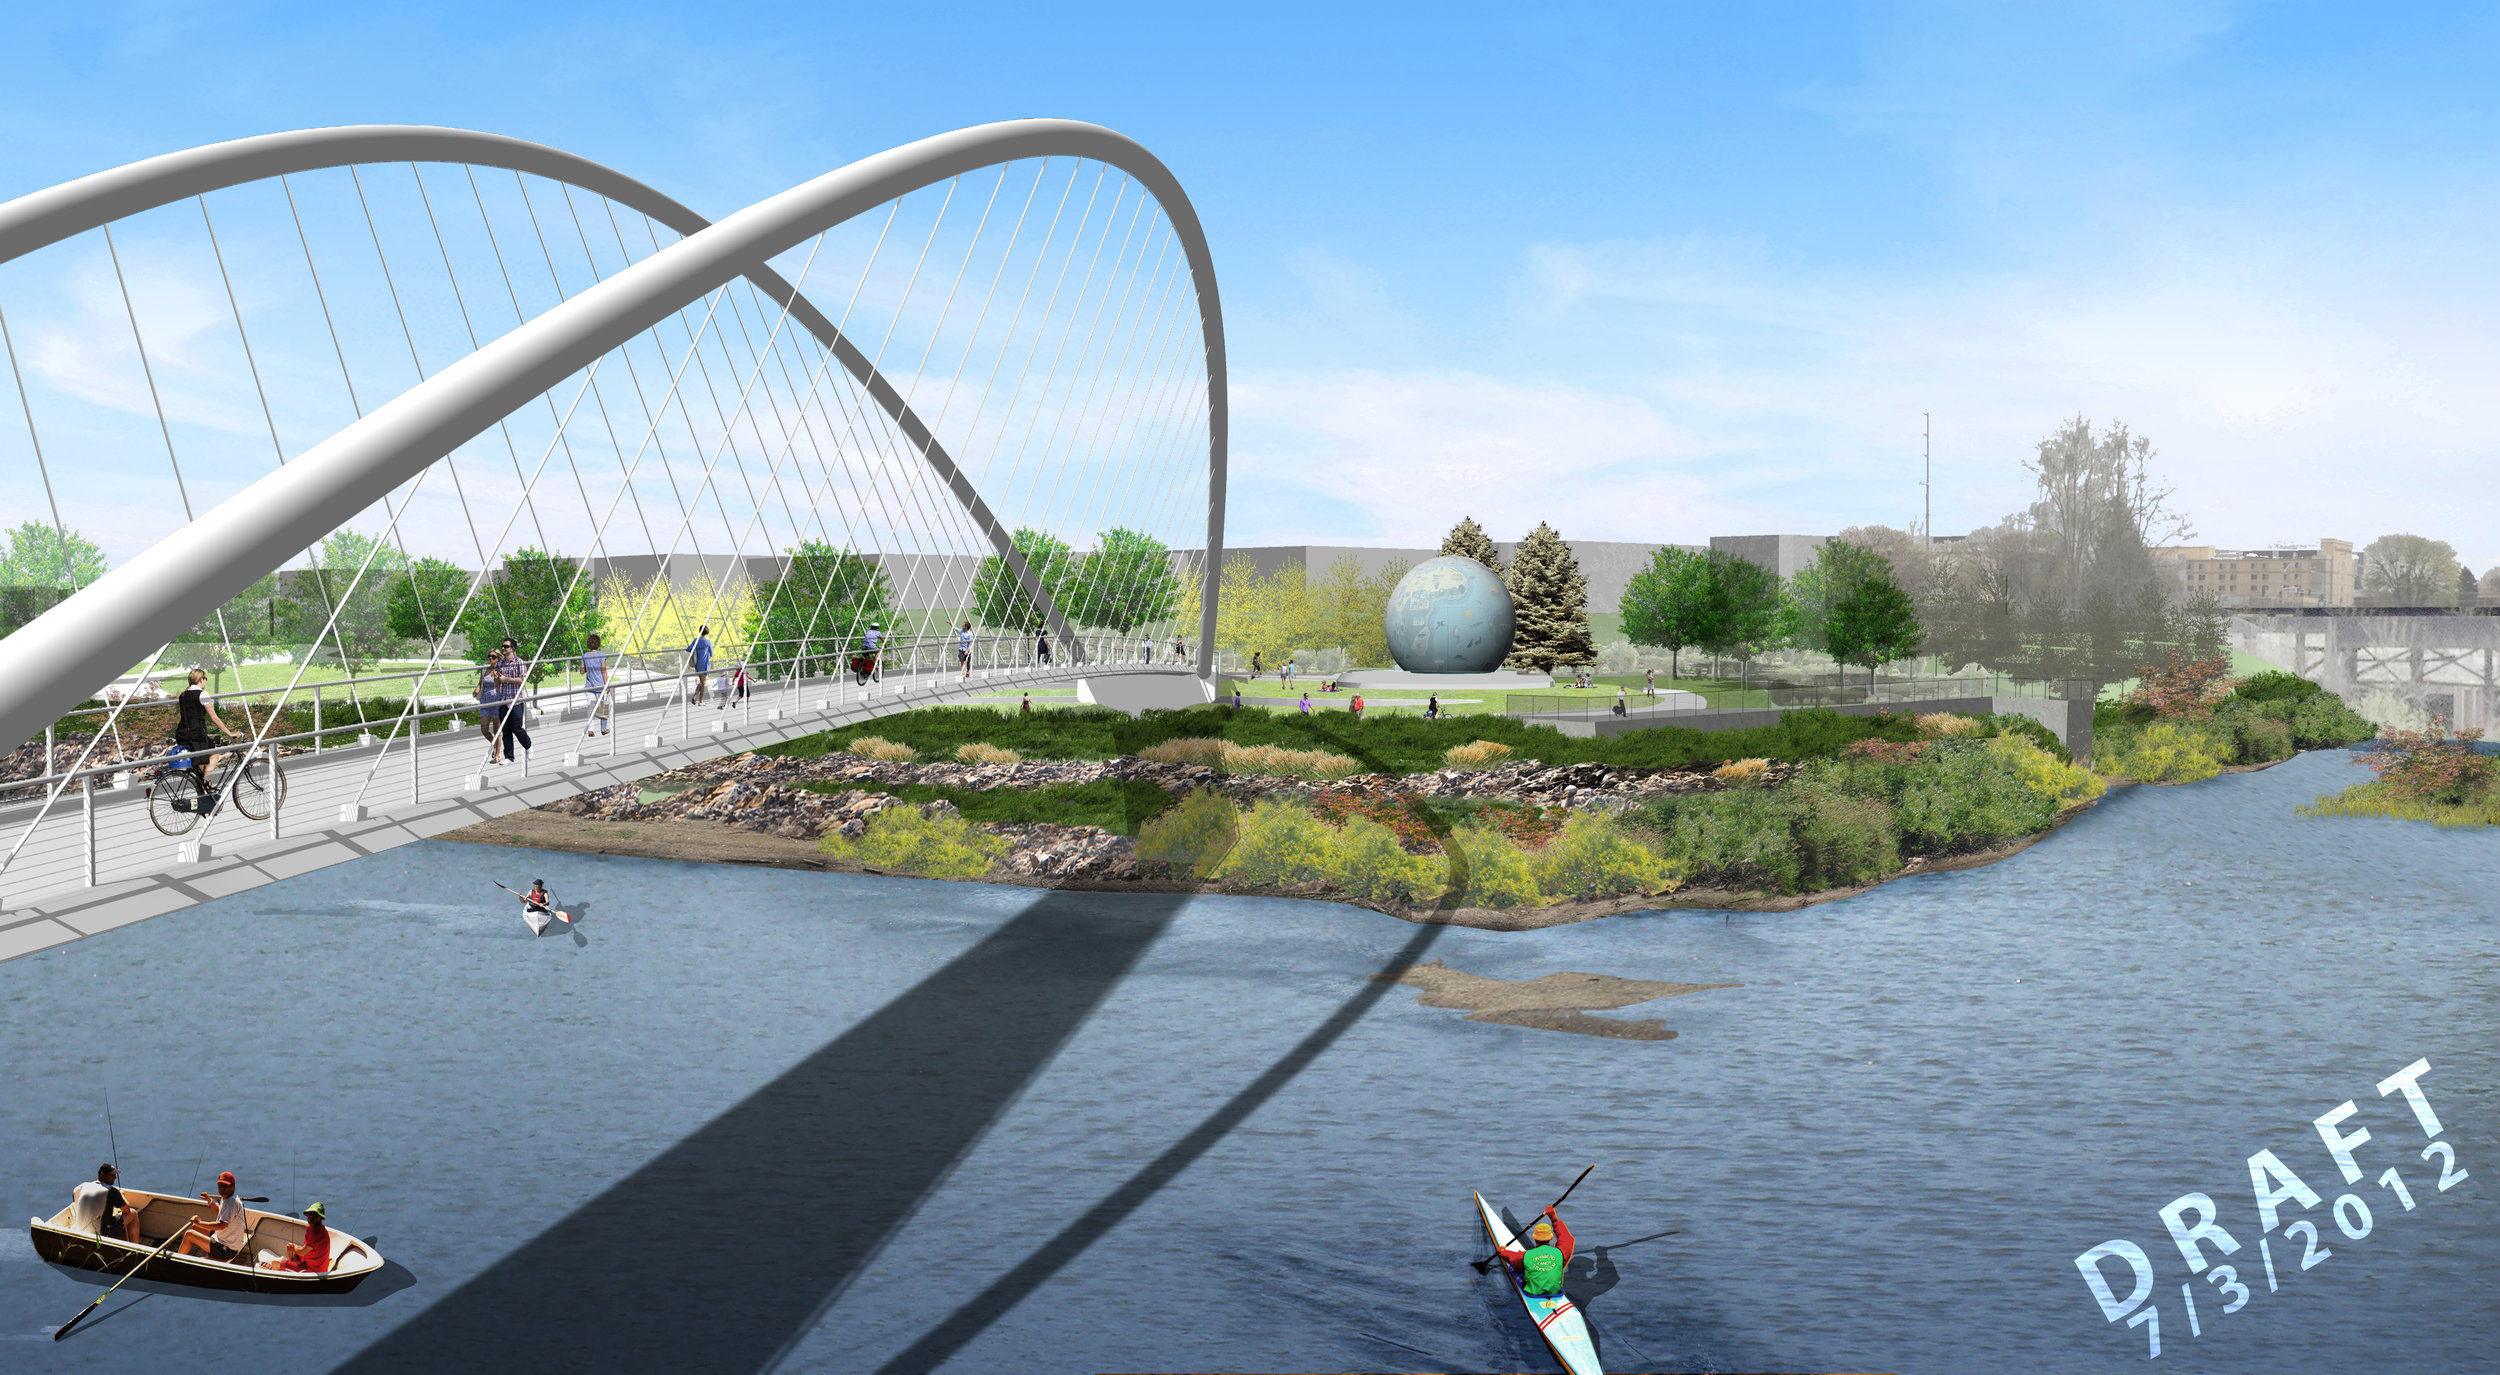 illustration of suspension bridge with kayakers in willamette slough in salem oregon